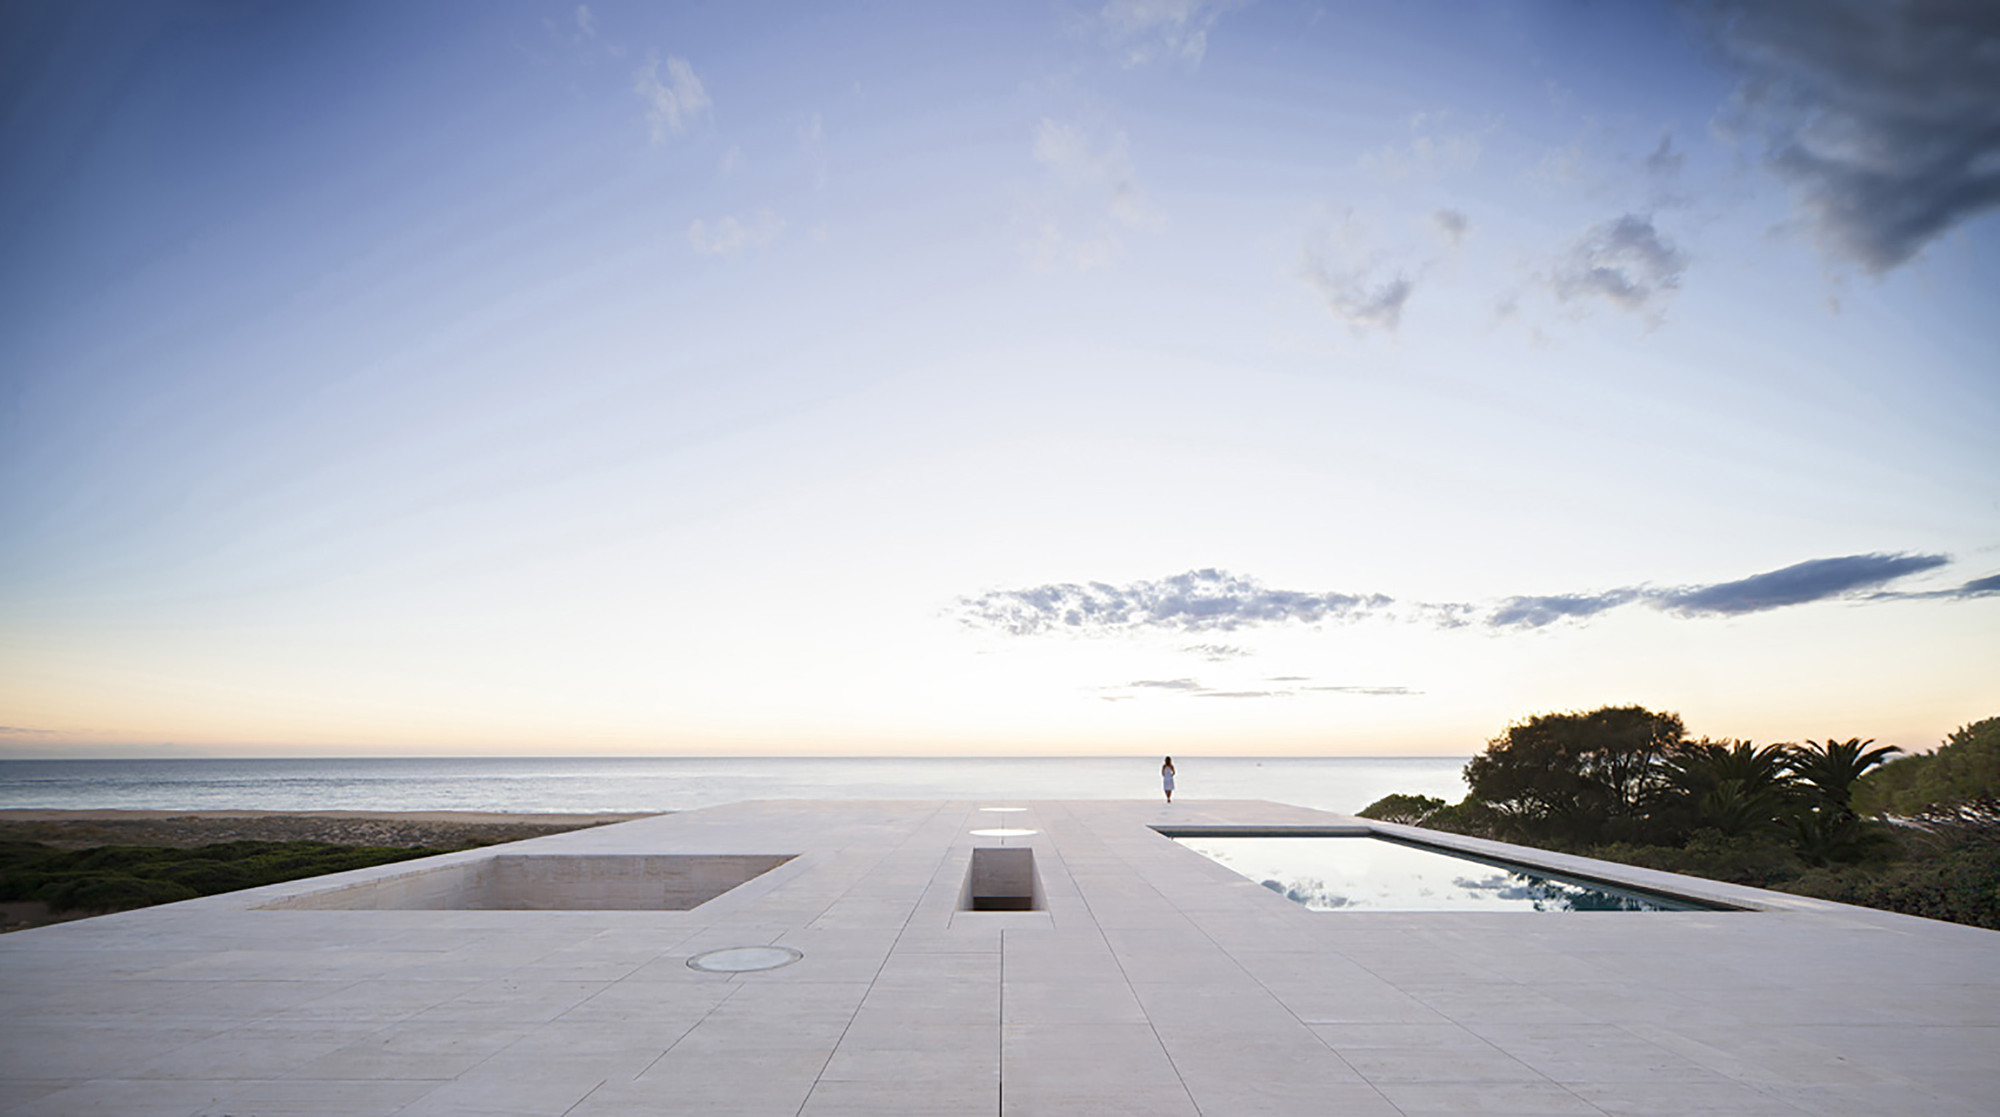 The House of the Infinite / Alberto Campo Baeza, © Javier Callejas Sevilla